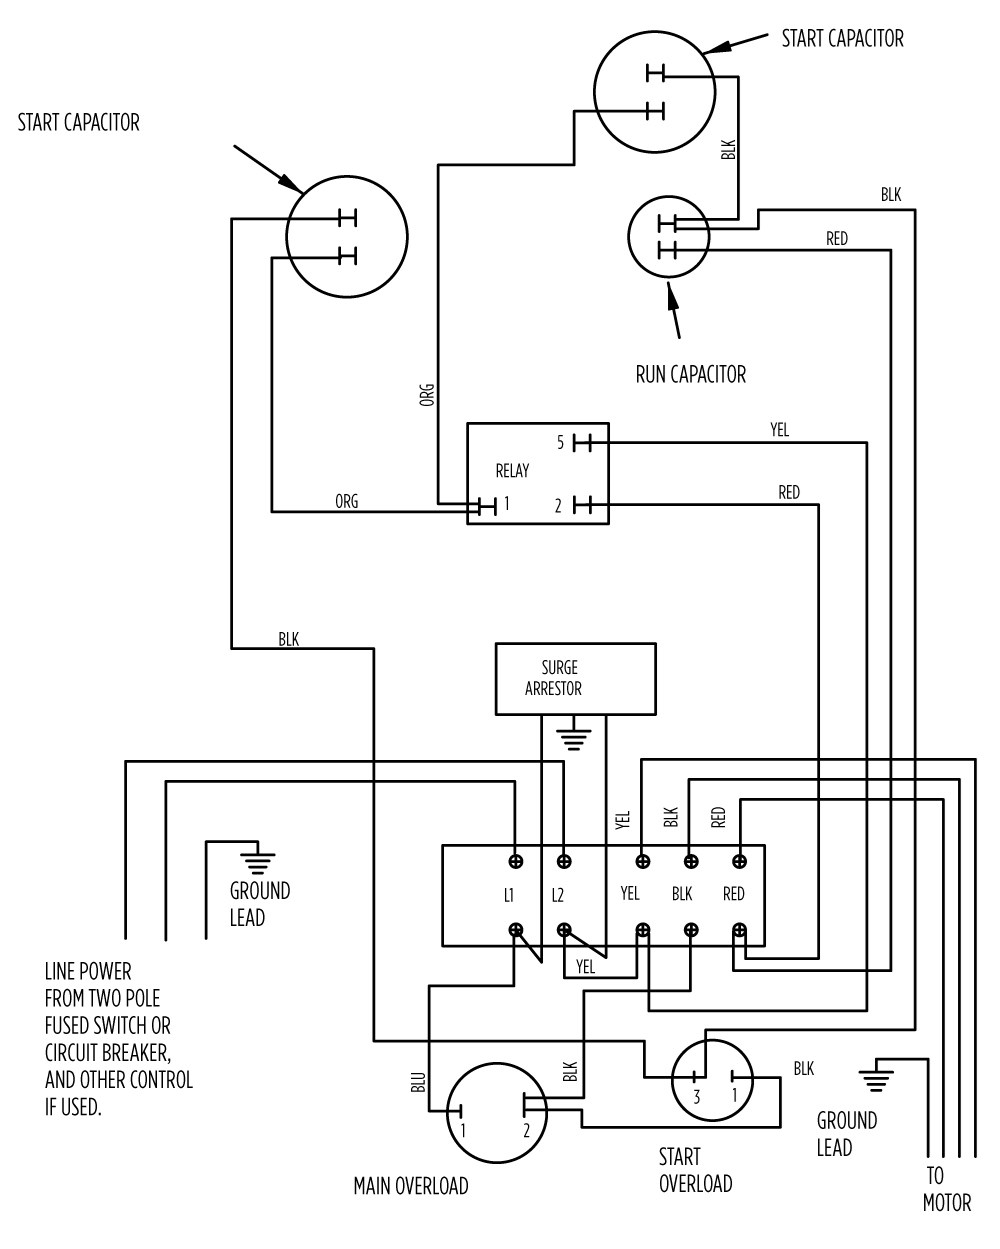 75 hp standard 282 201 9210_aim gallery?format=jpg&quality=80 aim manual page 56 single phase motors and controls motor sje rhombus wiring diagram at gsmportal.co